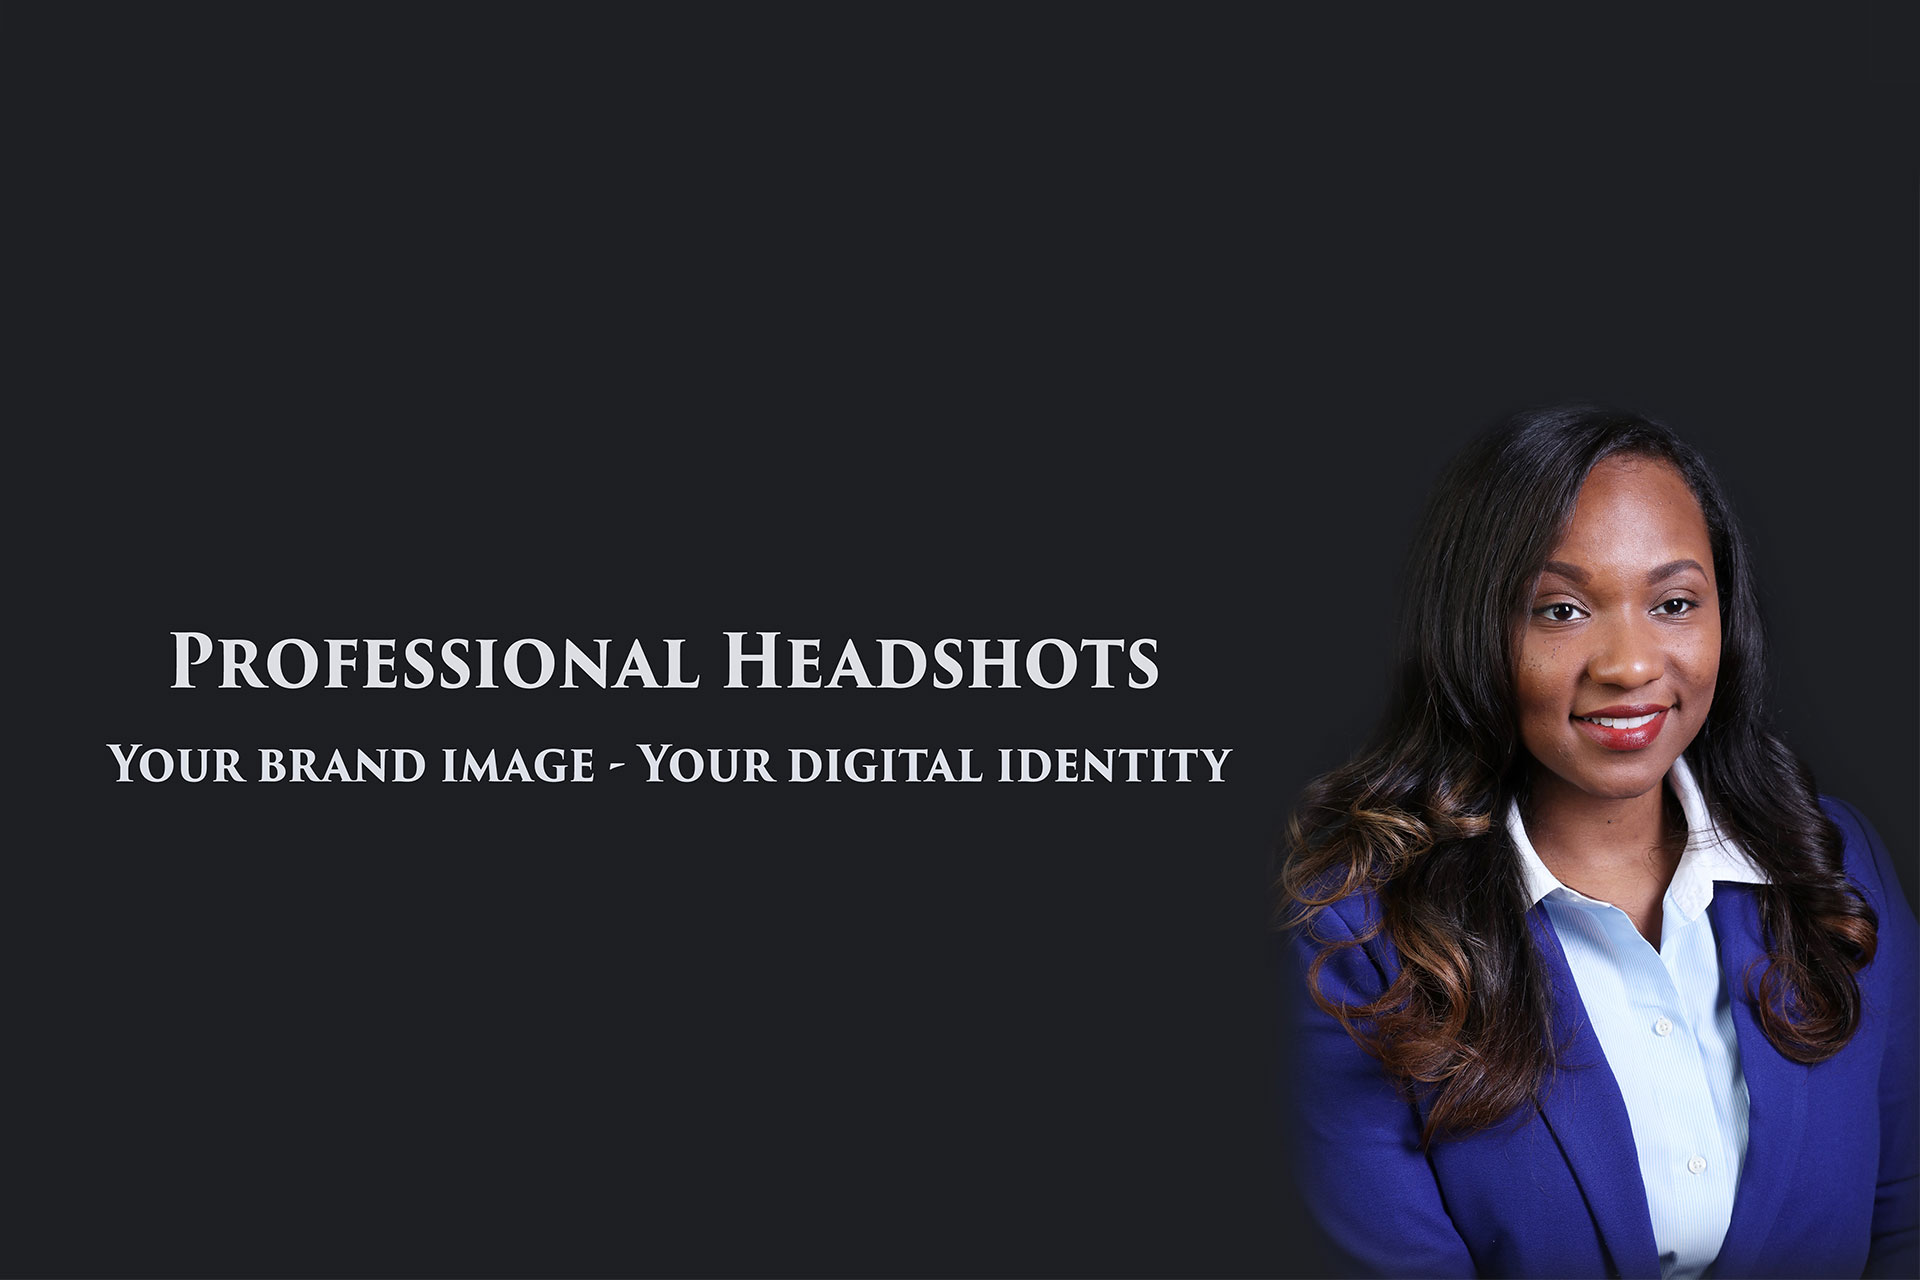 houston-pearland-corporate-professional-headshot